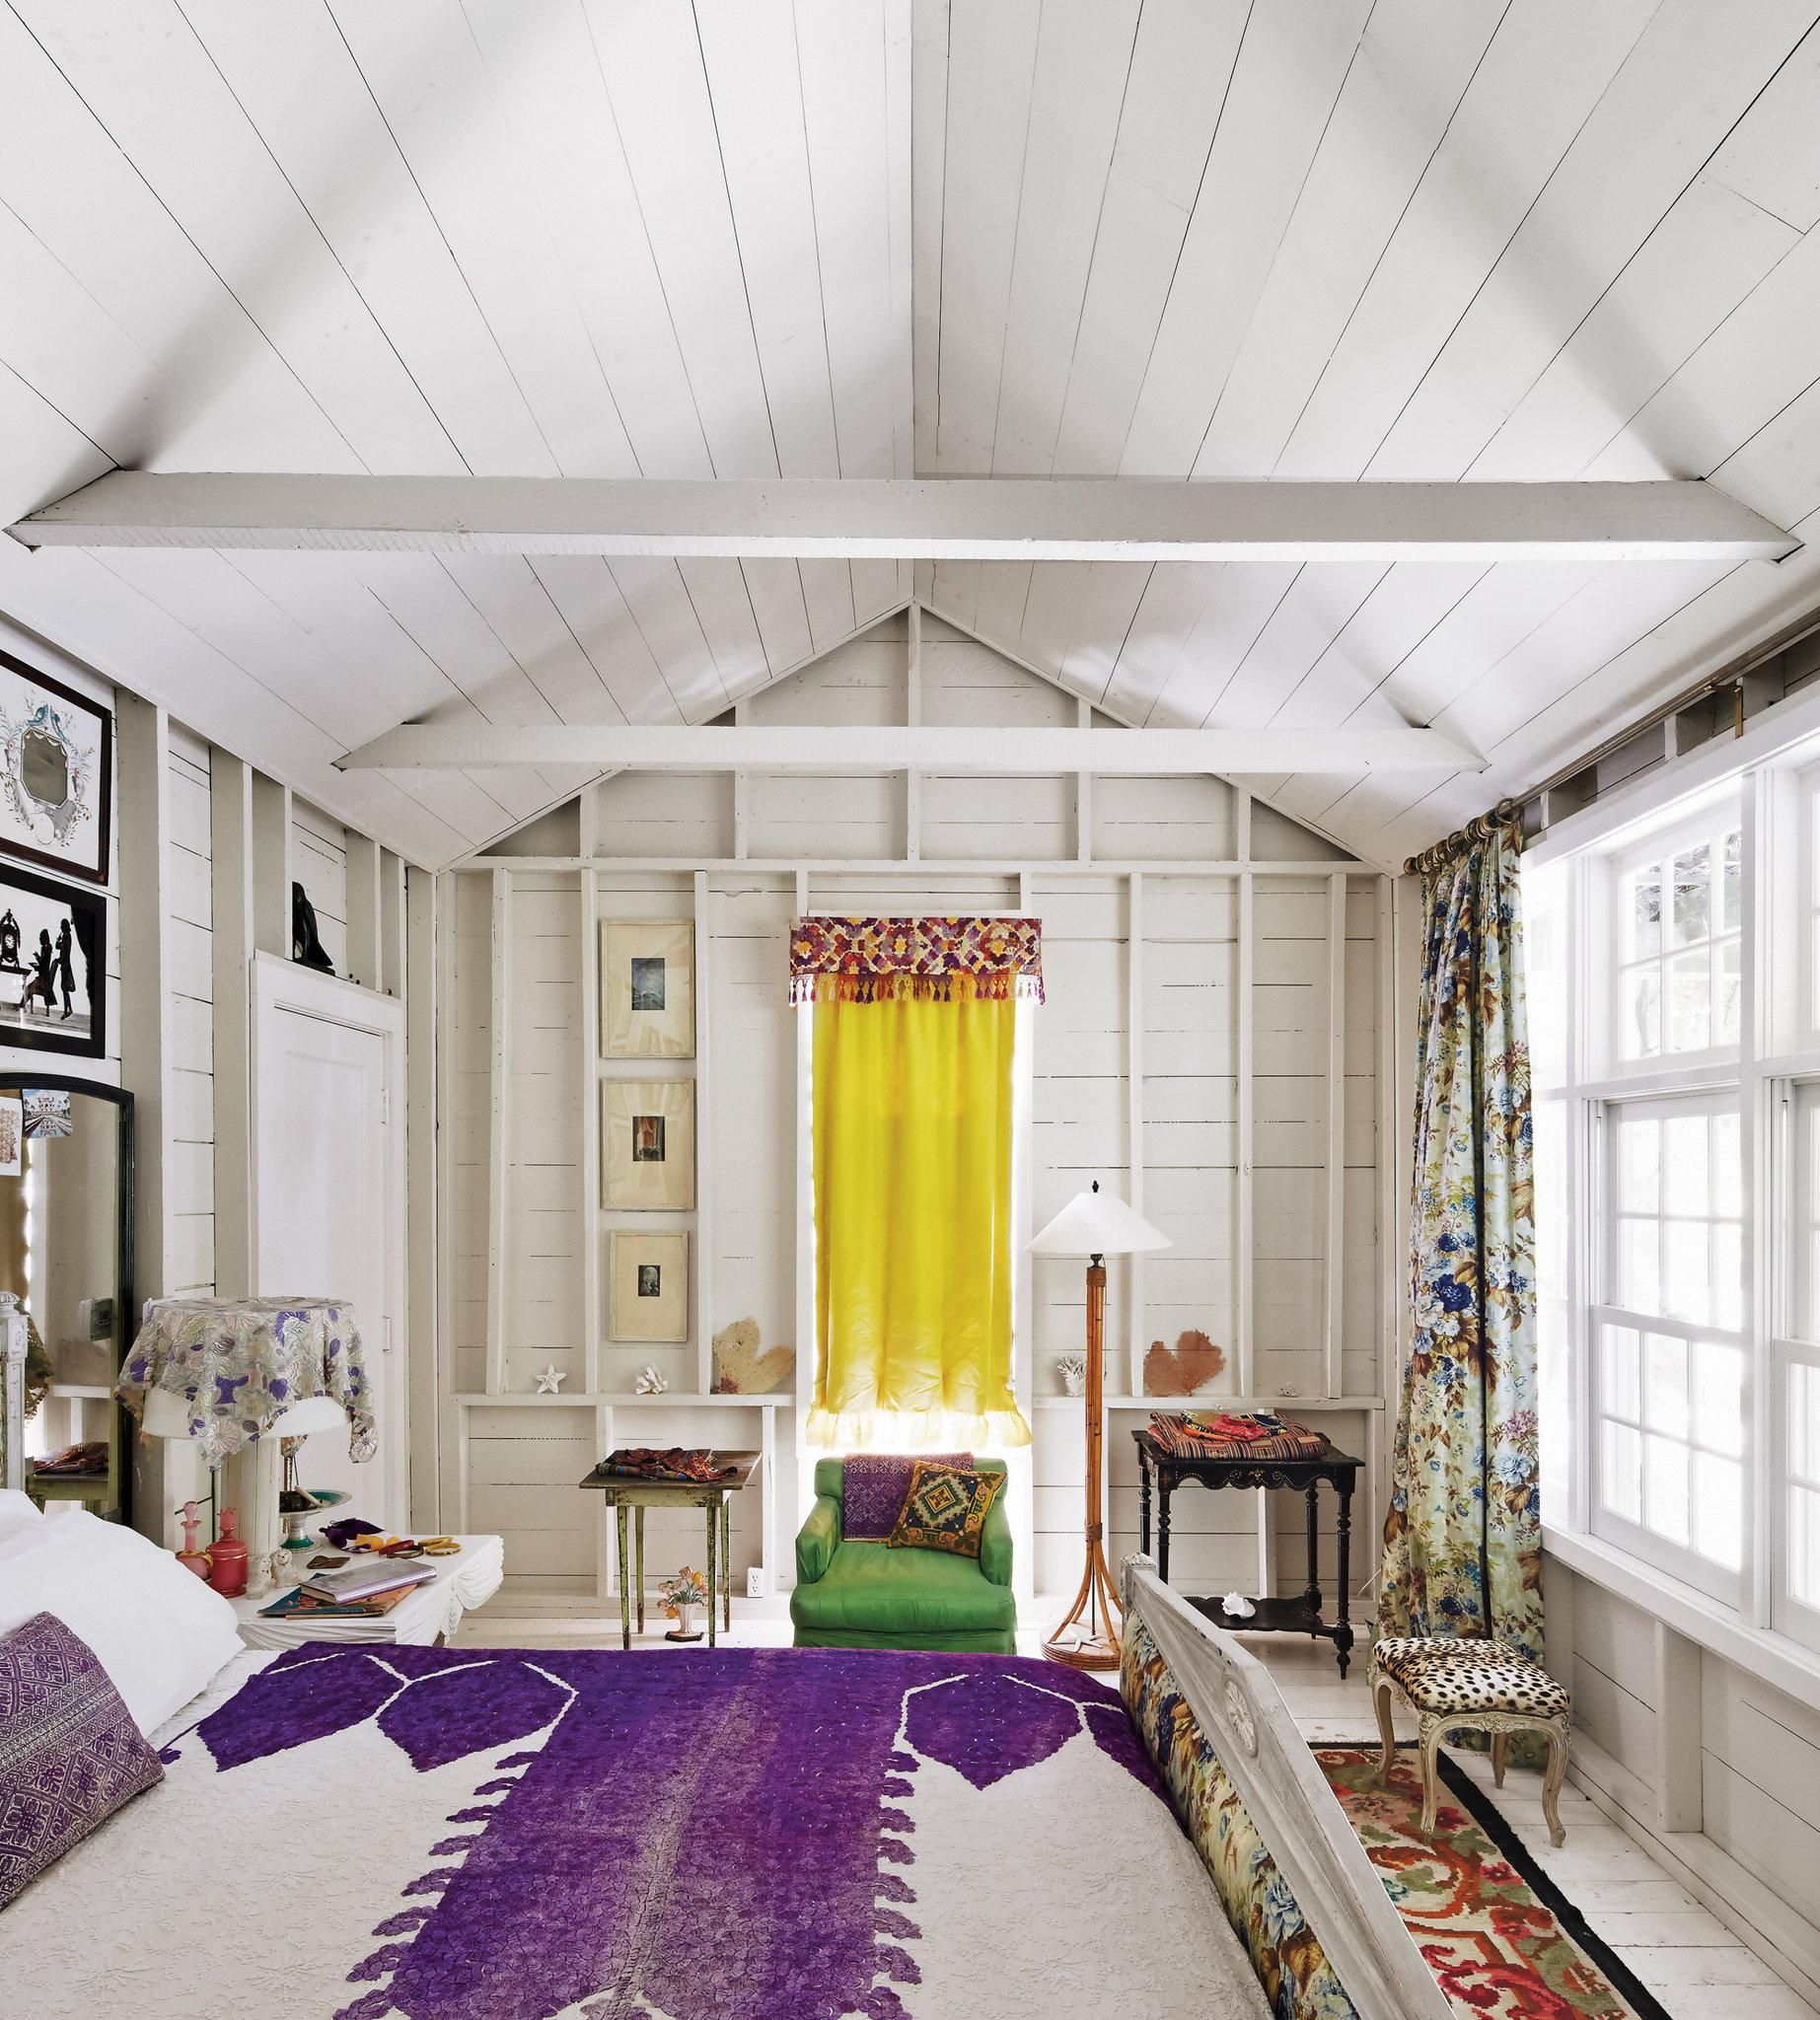 Green Living Room Ideas In East Hampton New York: Vintage Textiles Give Any Room Instant élan.